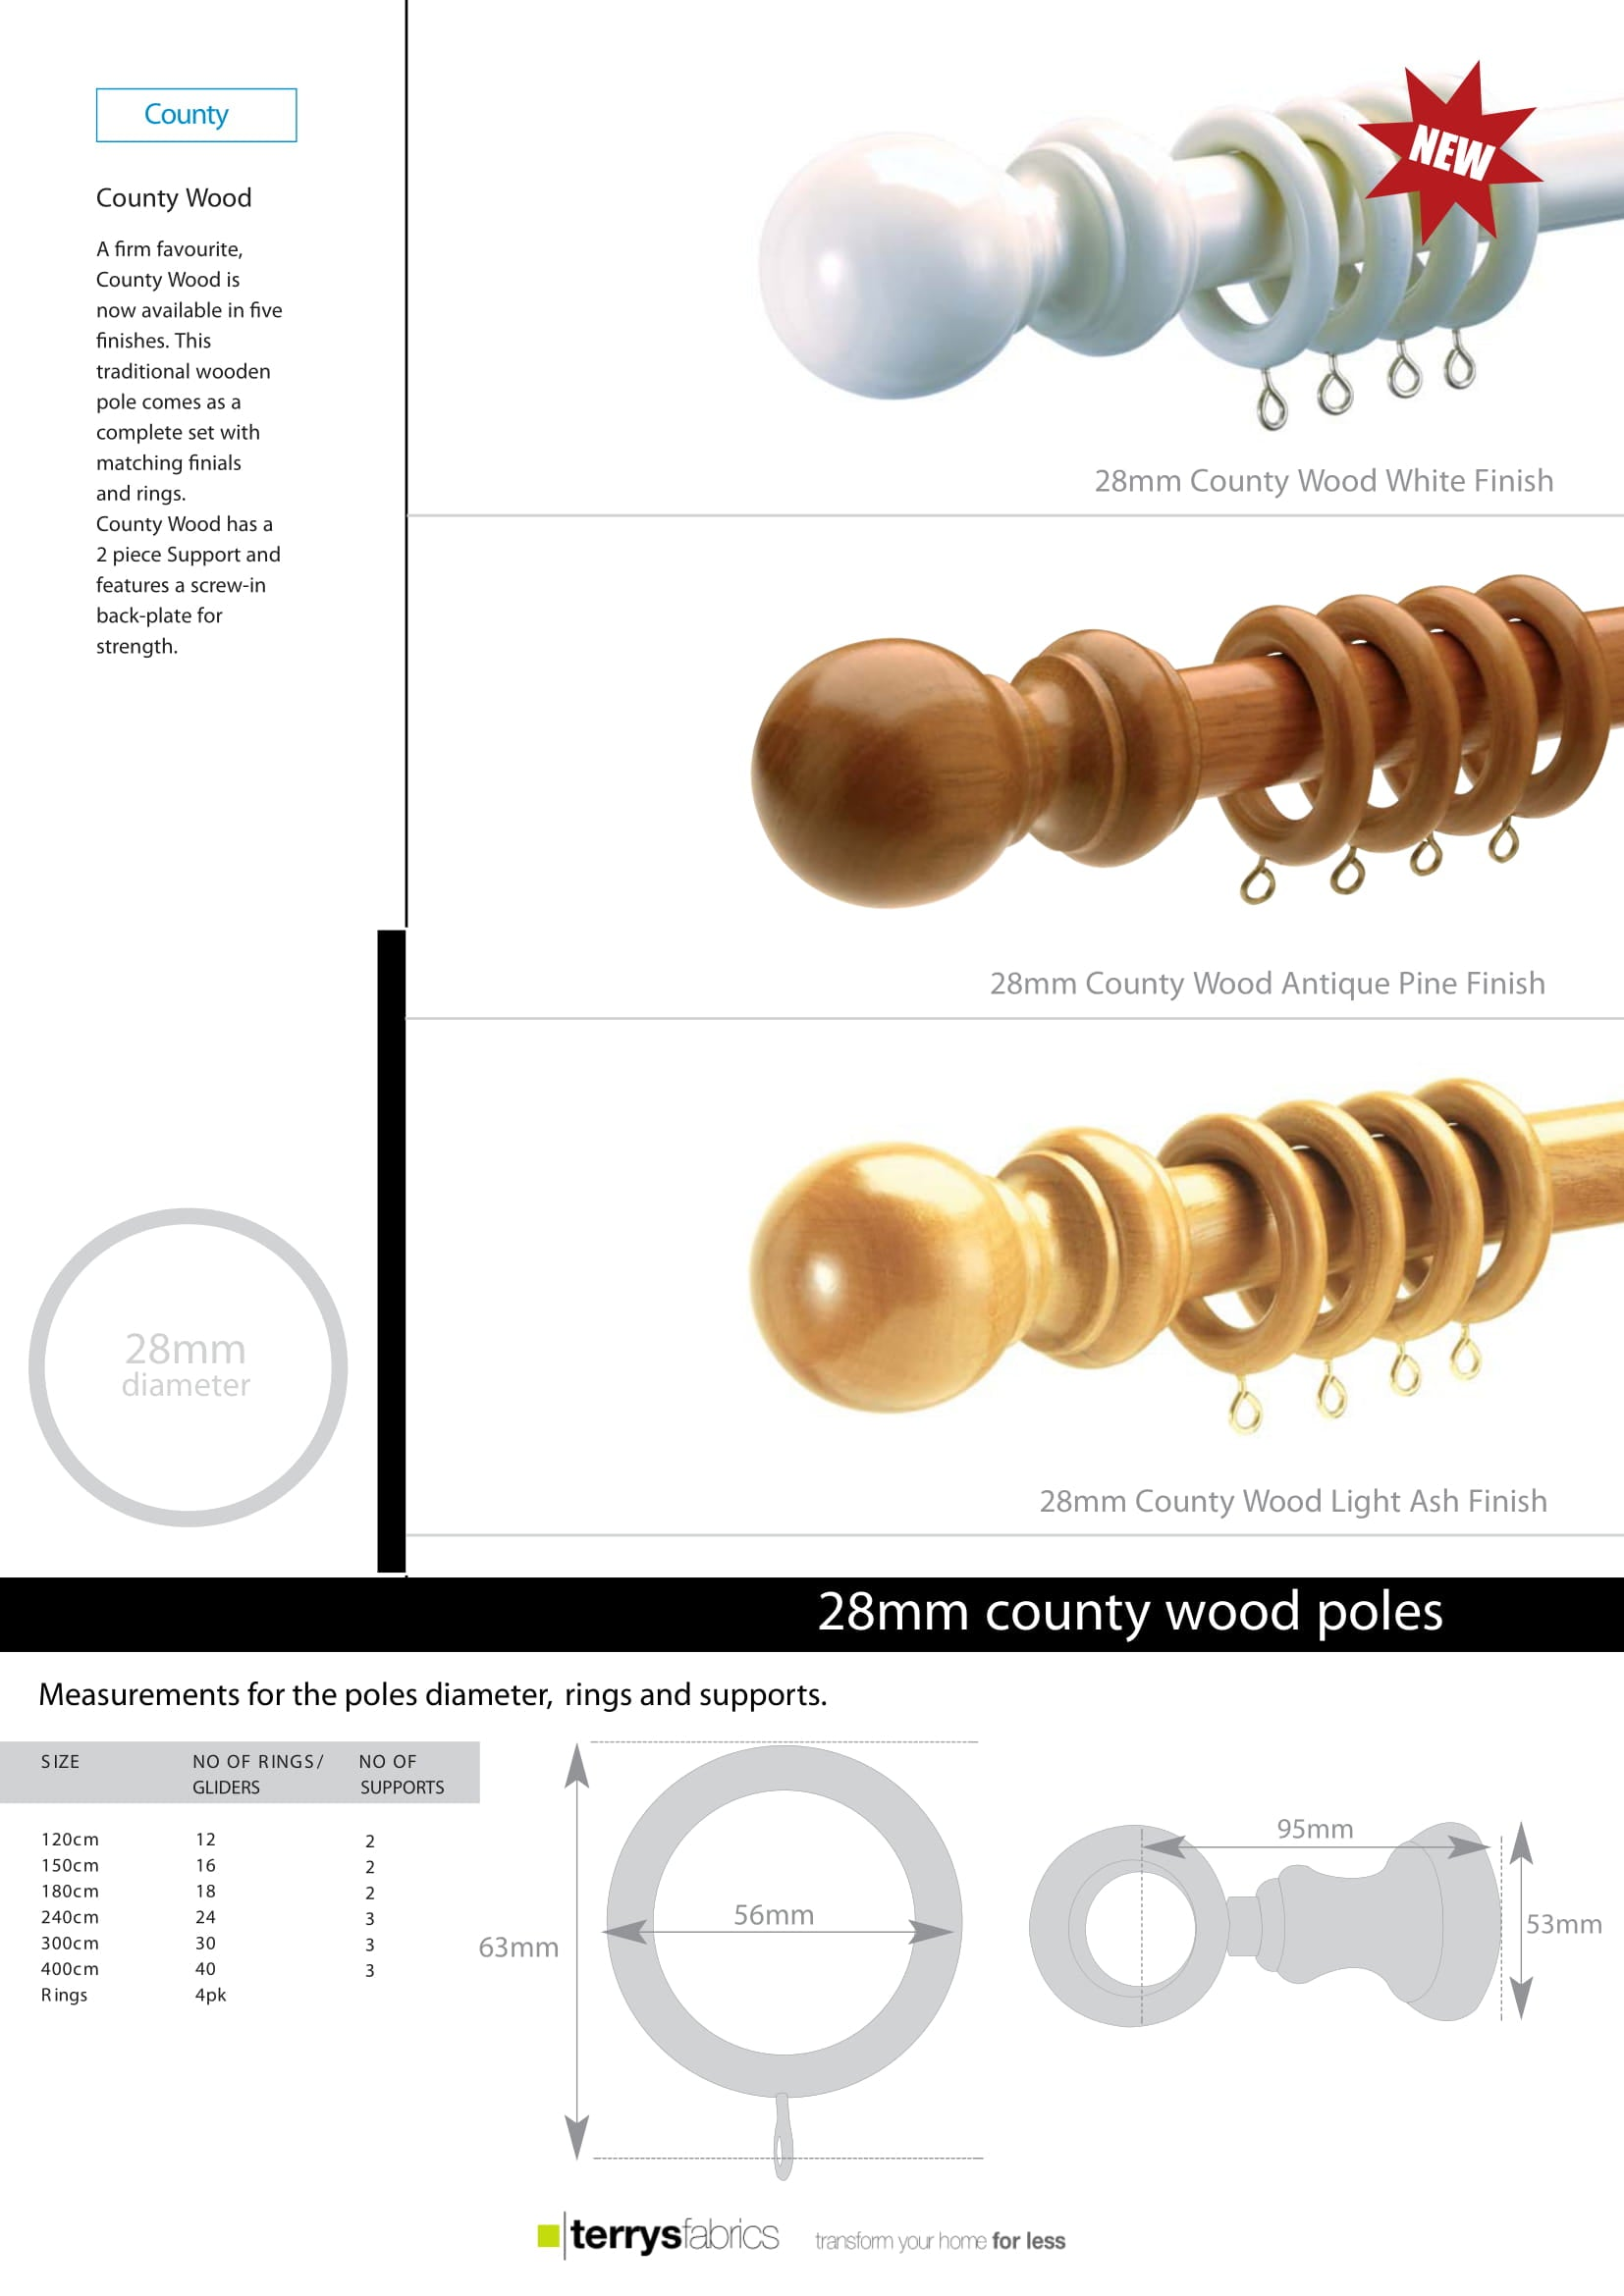 County Metal Poles Product Details And Fitting Instructions One